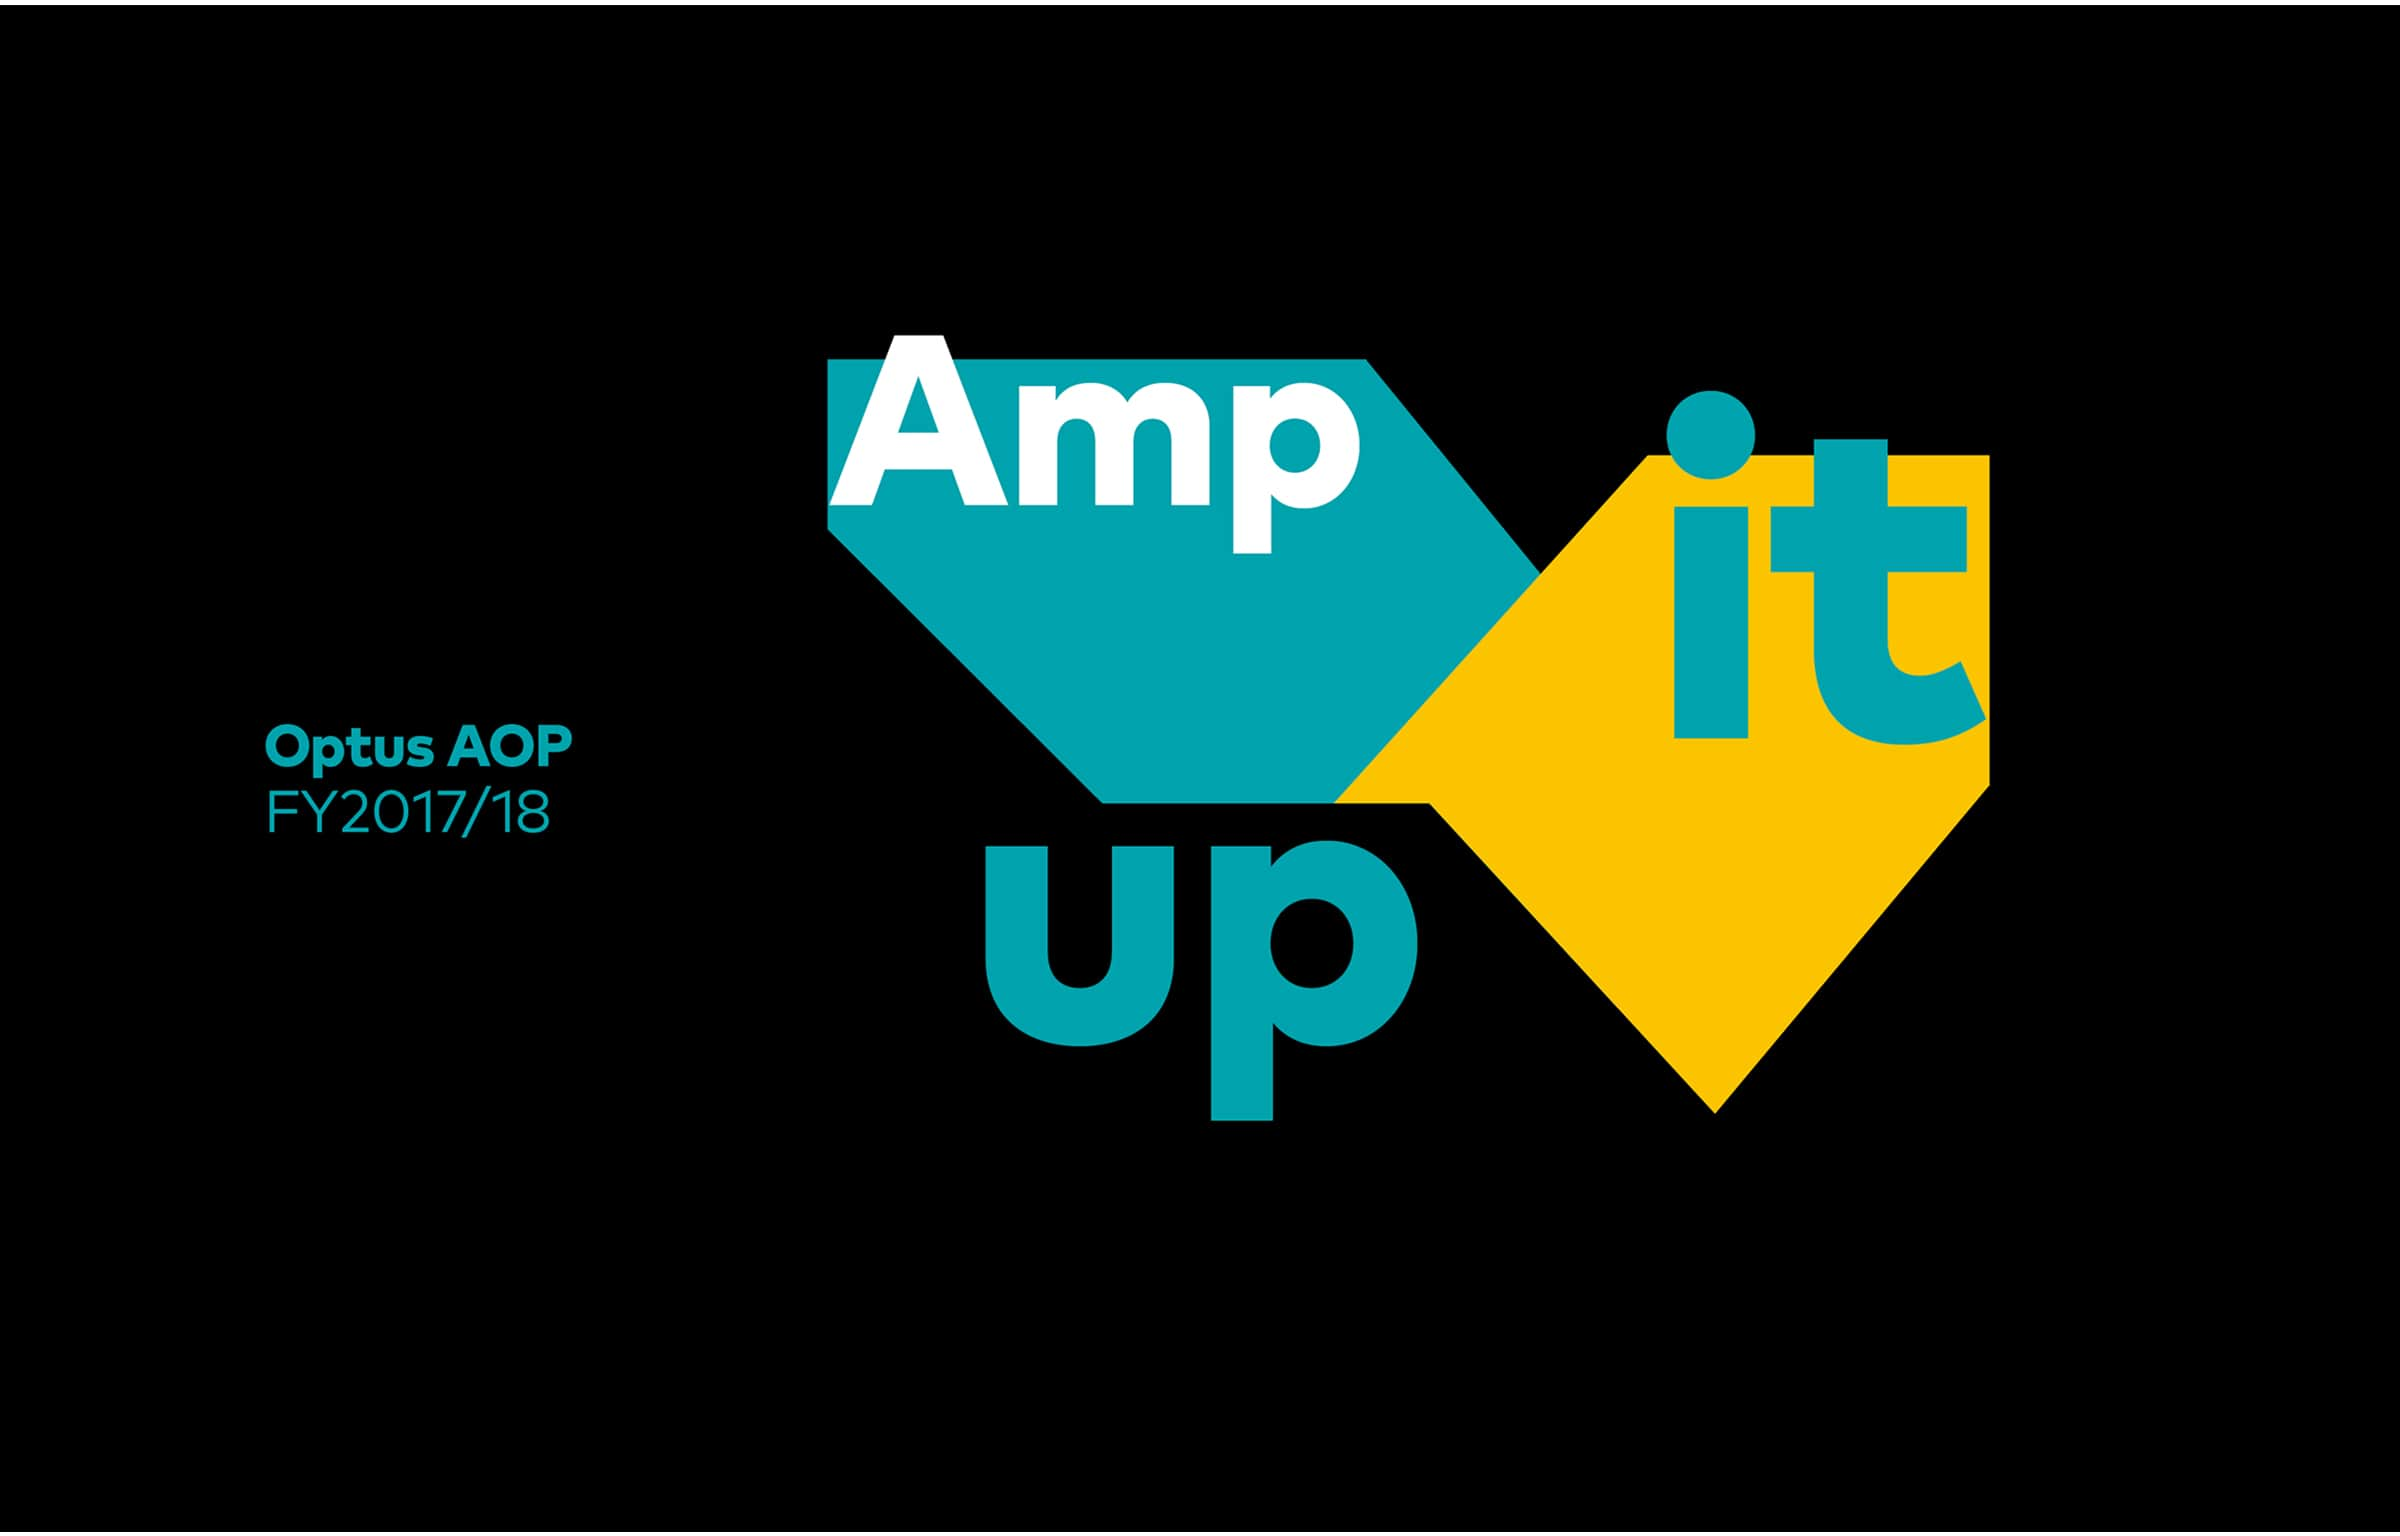 Optus Amp It Up